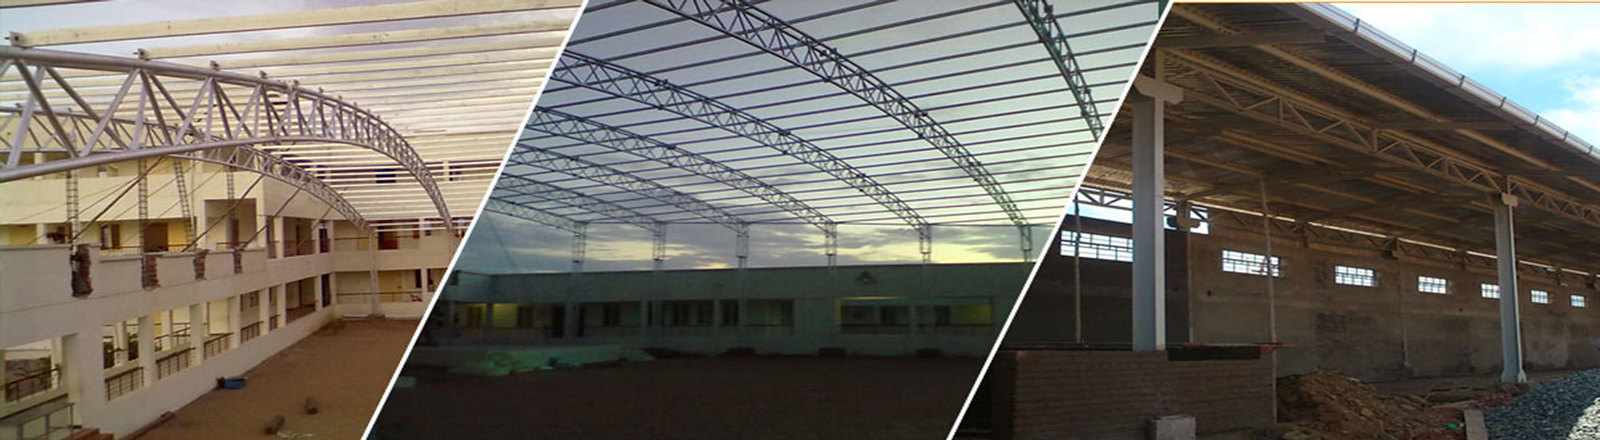 terrace-civil-metal-polycarbonate-industrial-roofing-contractors-chennai-tamilnadu-kerala-india